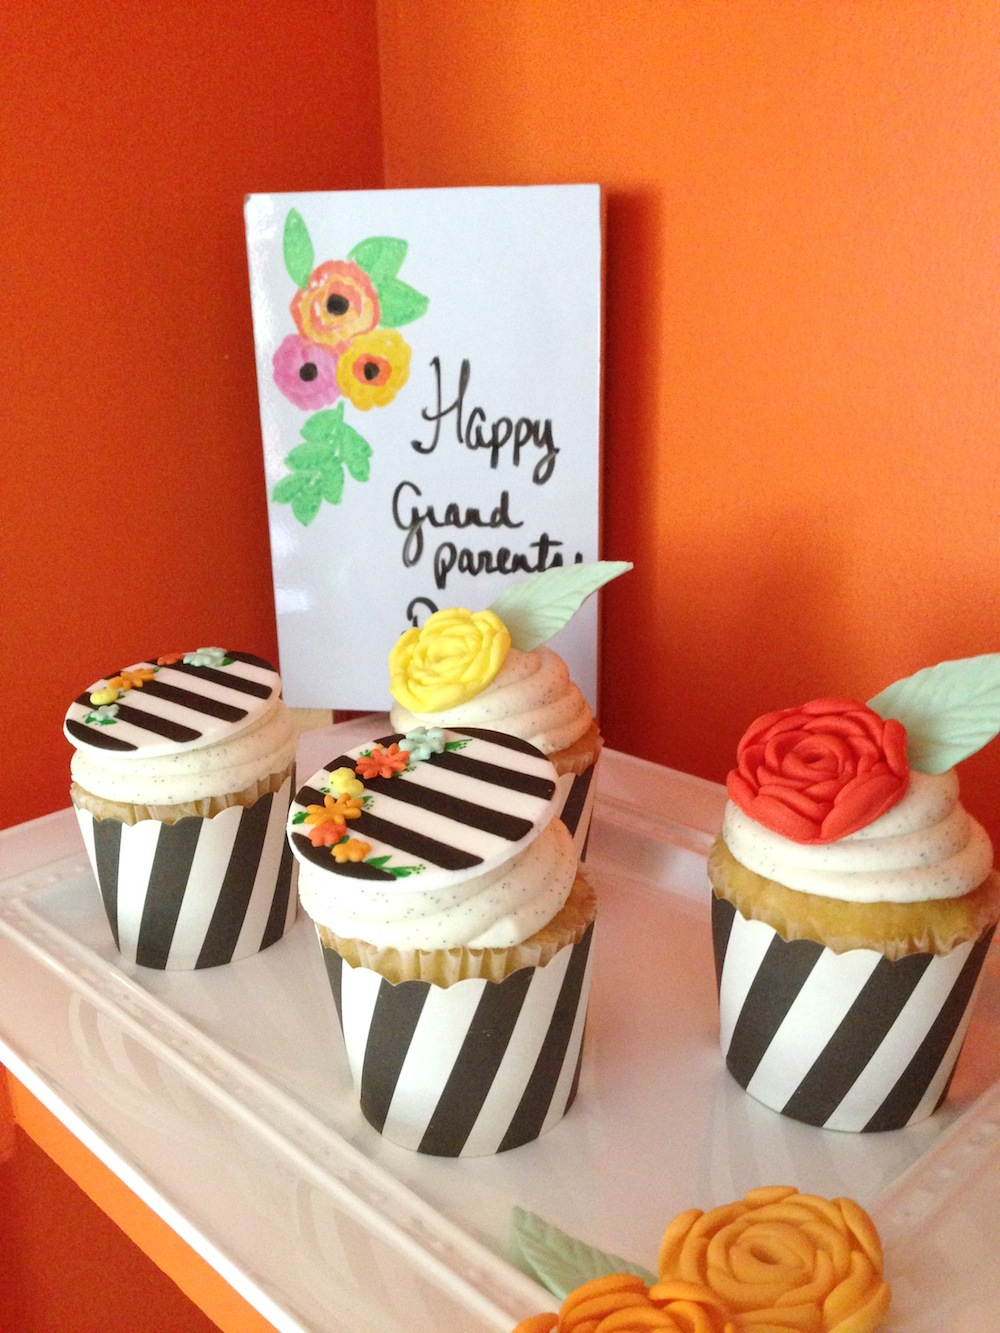 grandparents-day-styled-photo-shoot-cupcakes.jpg